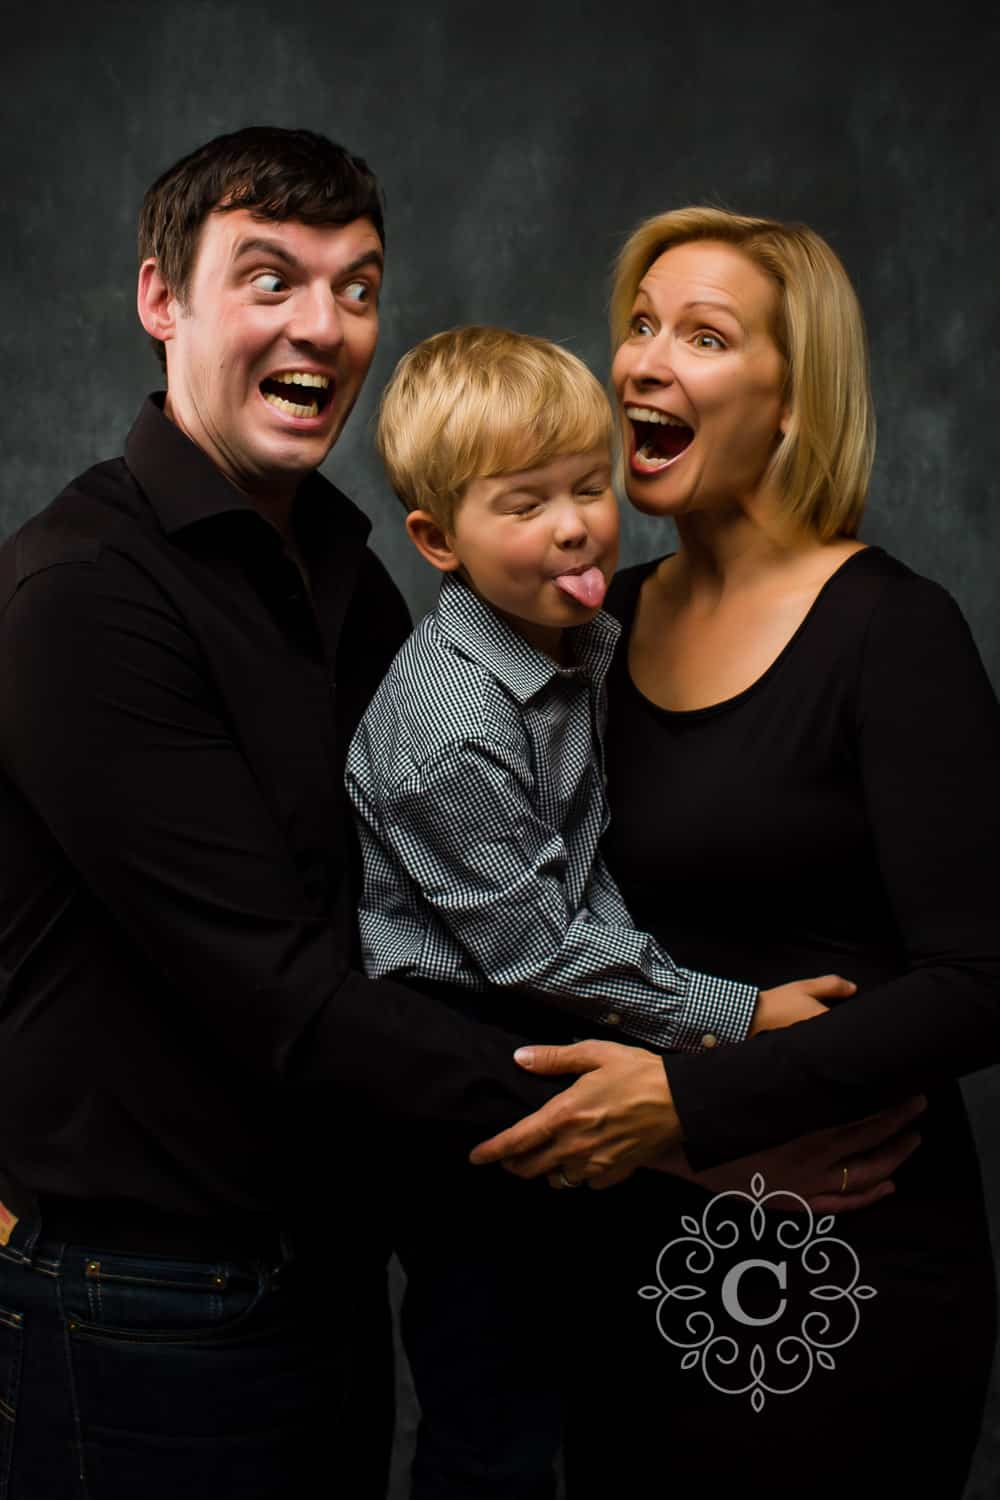 MN Family Photography Studio